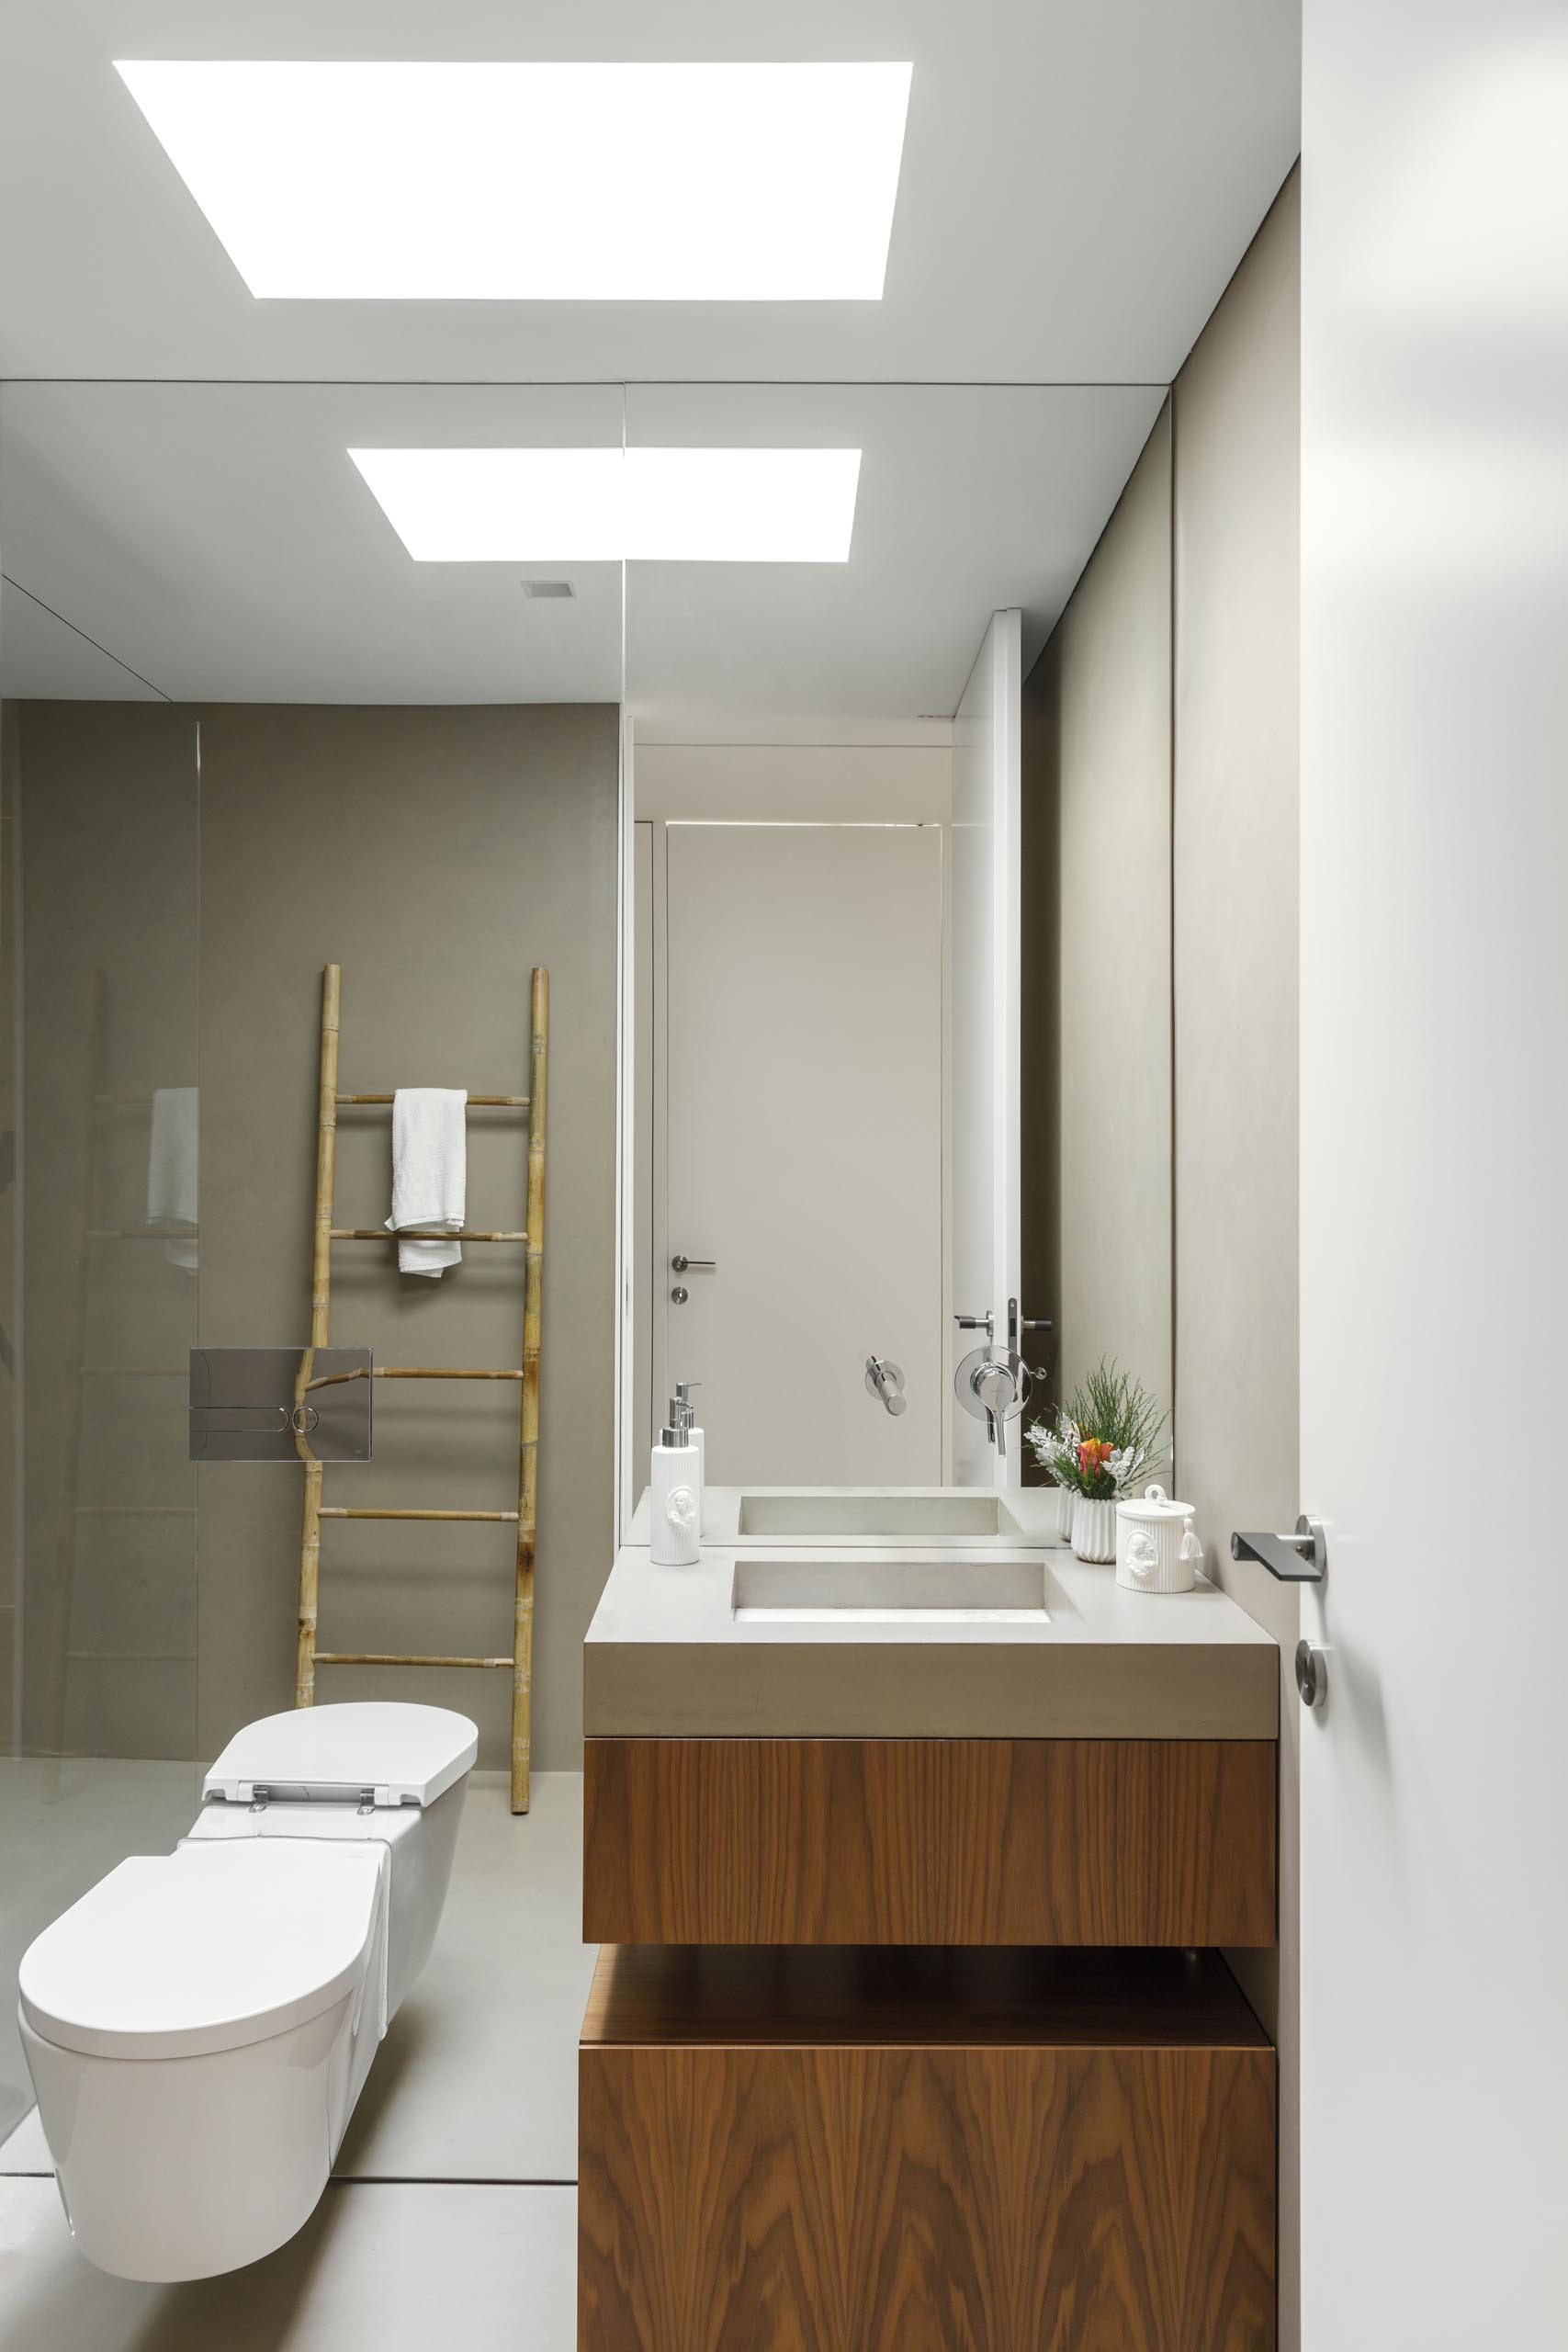 A modern bathroom with a built-in vanity sink and a floor-to-ceiling mirror.